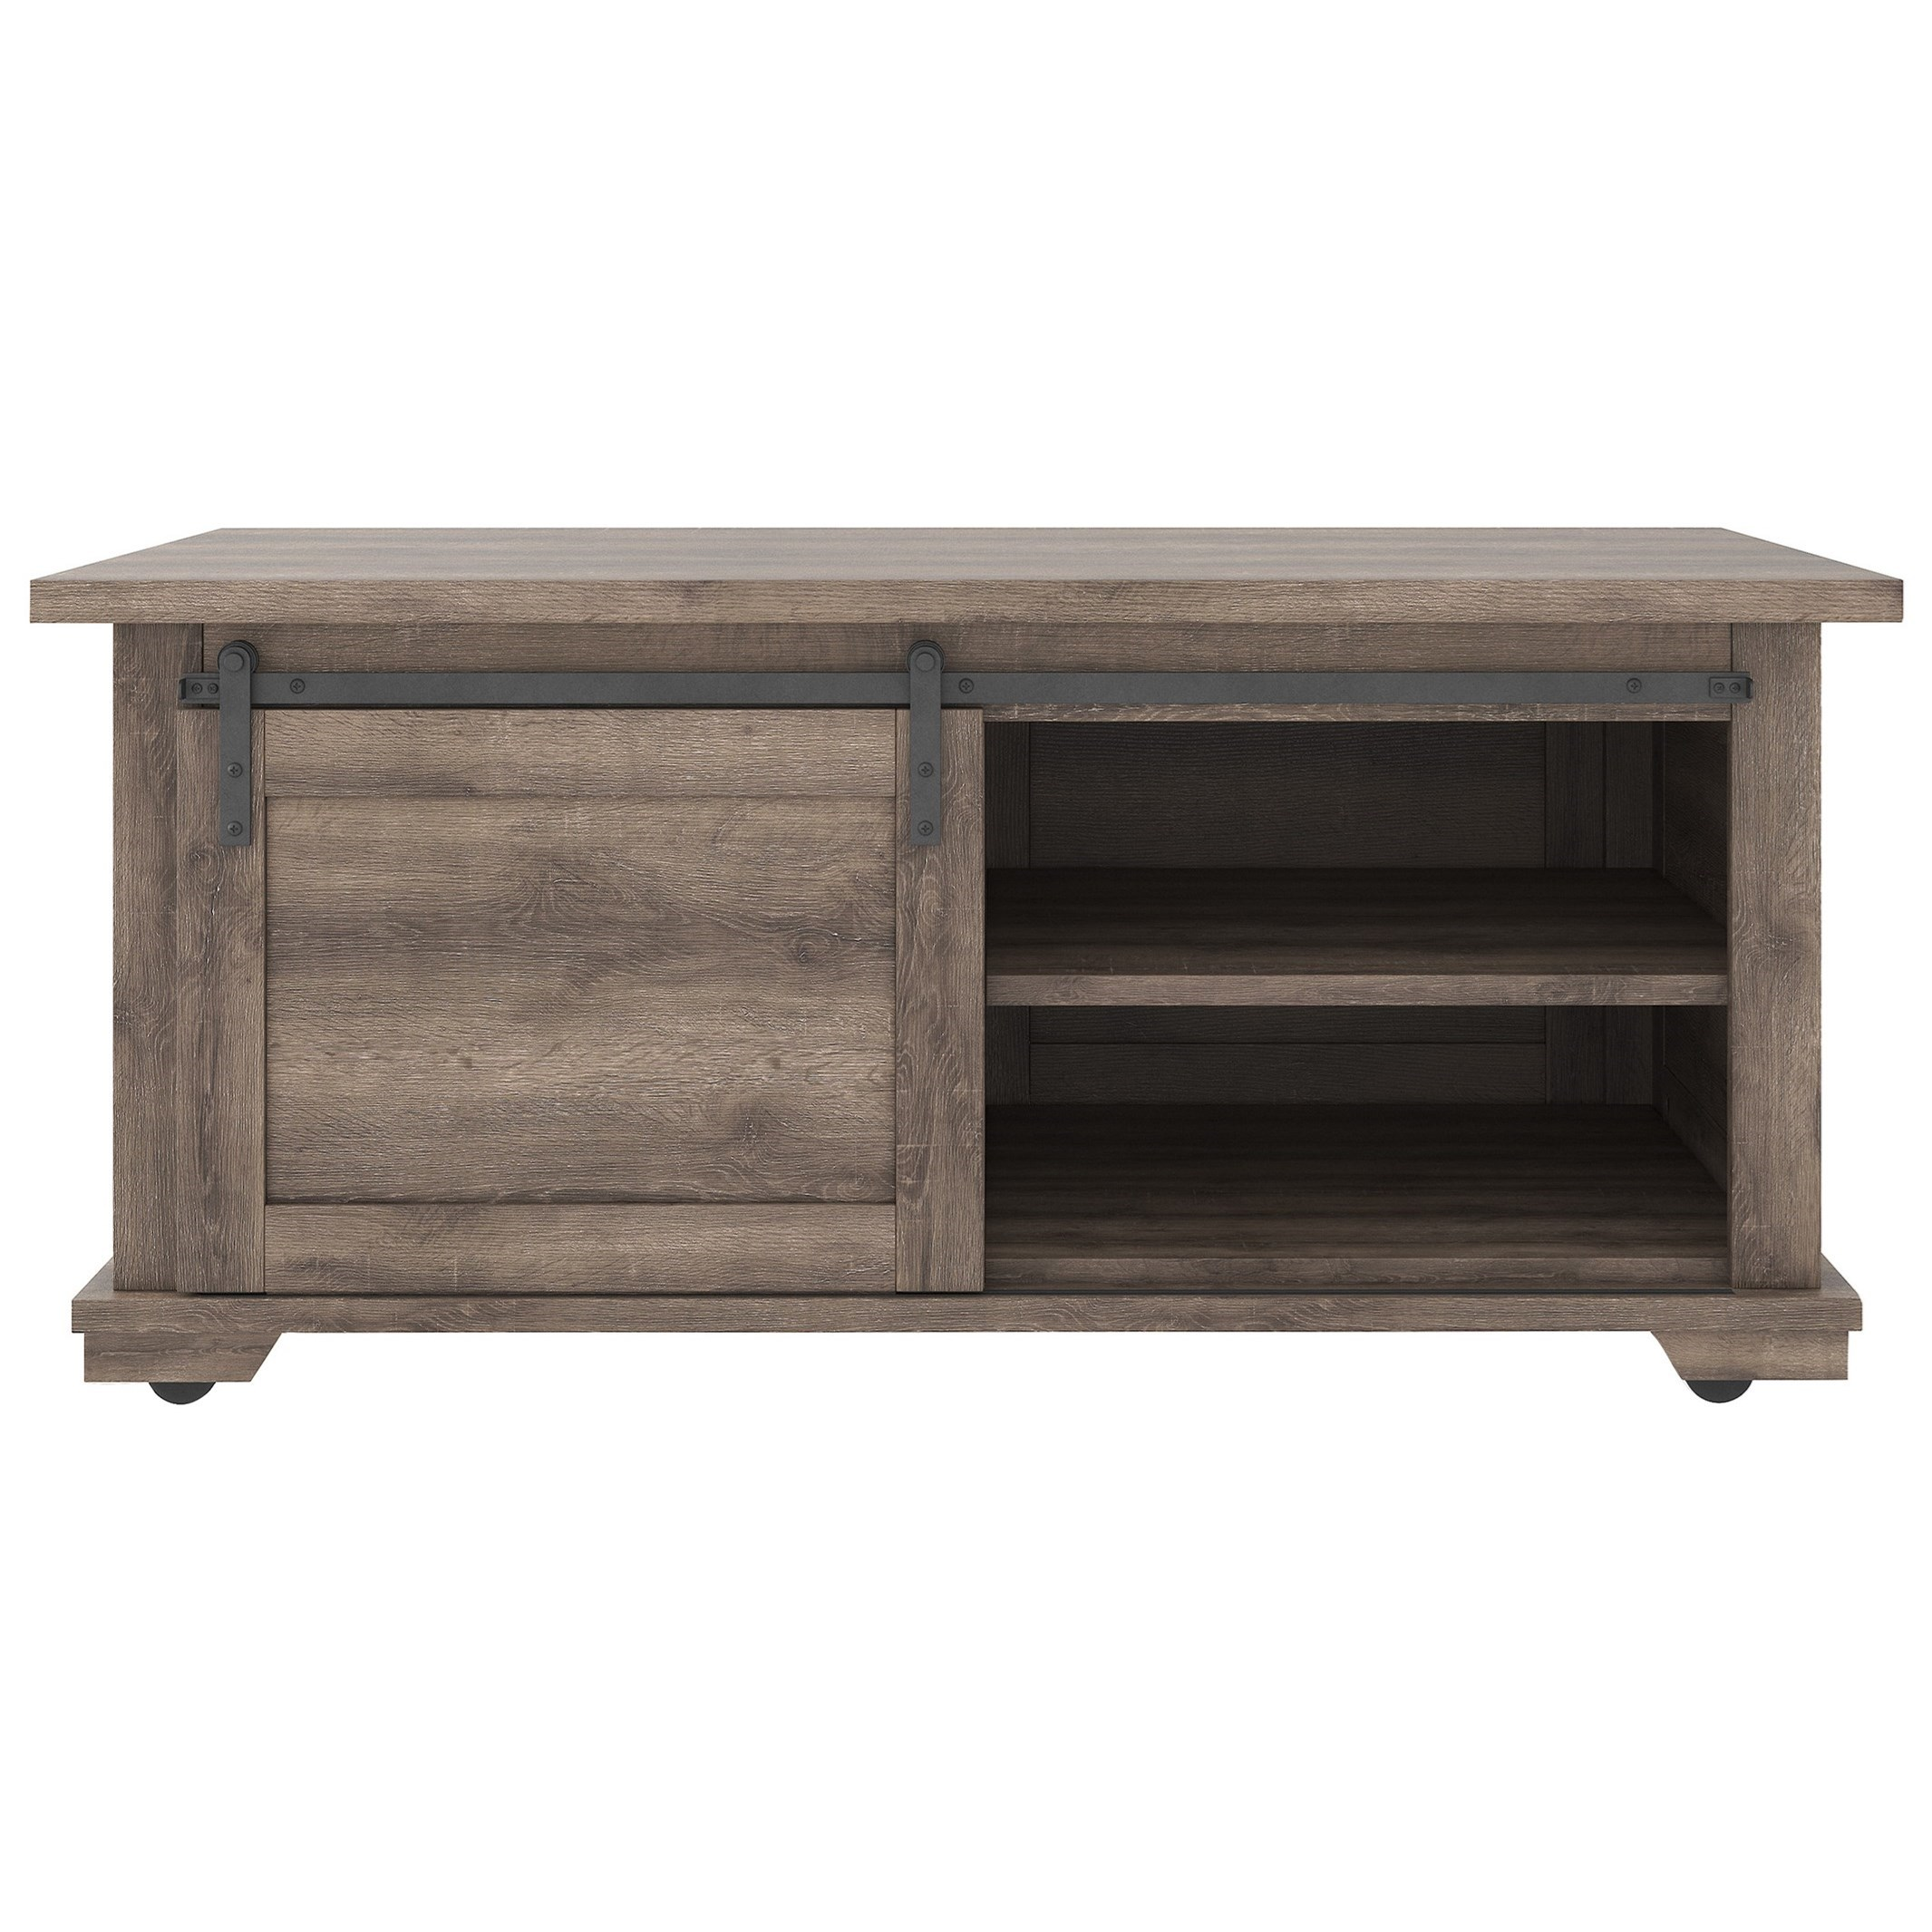 Arlenbry Rectangle Cocktail Table by Signature Design by Ashley at Household Furniture